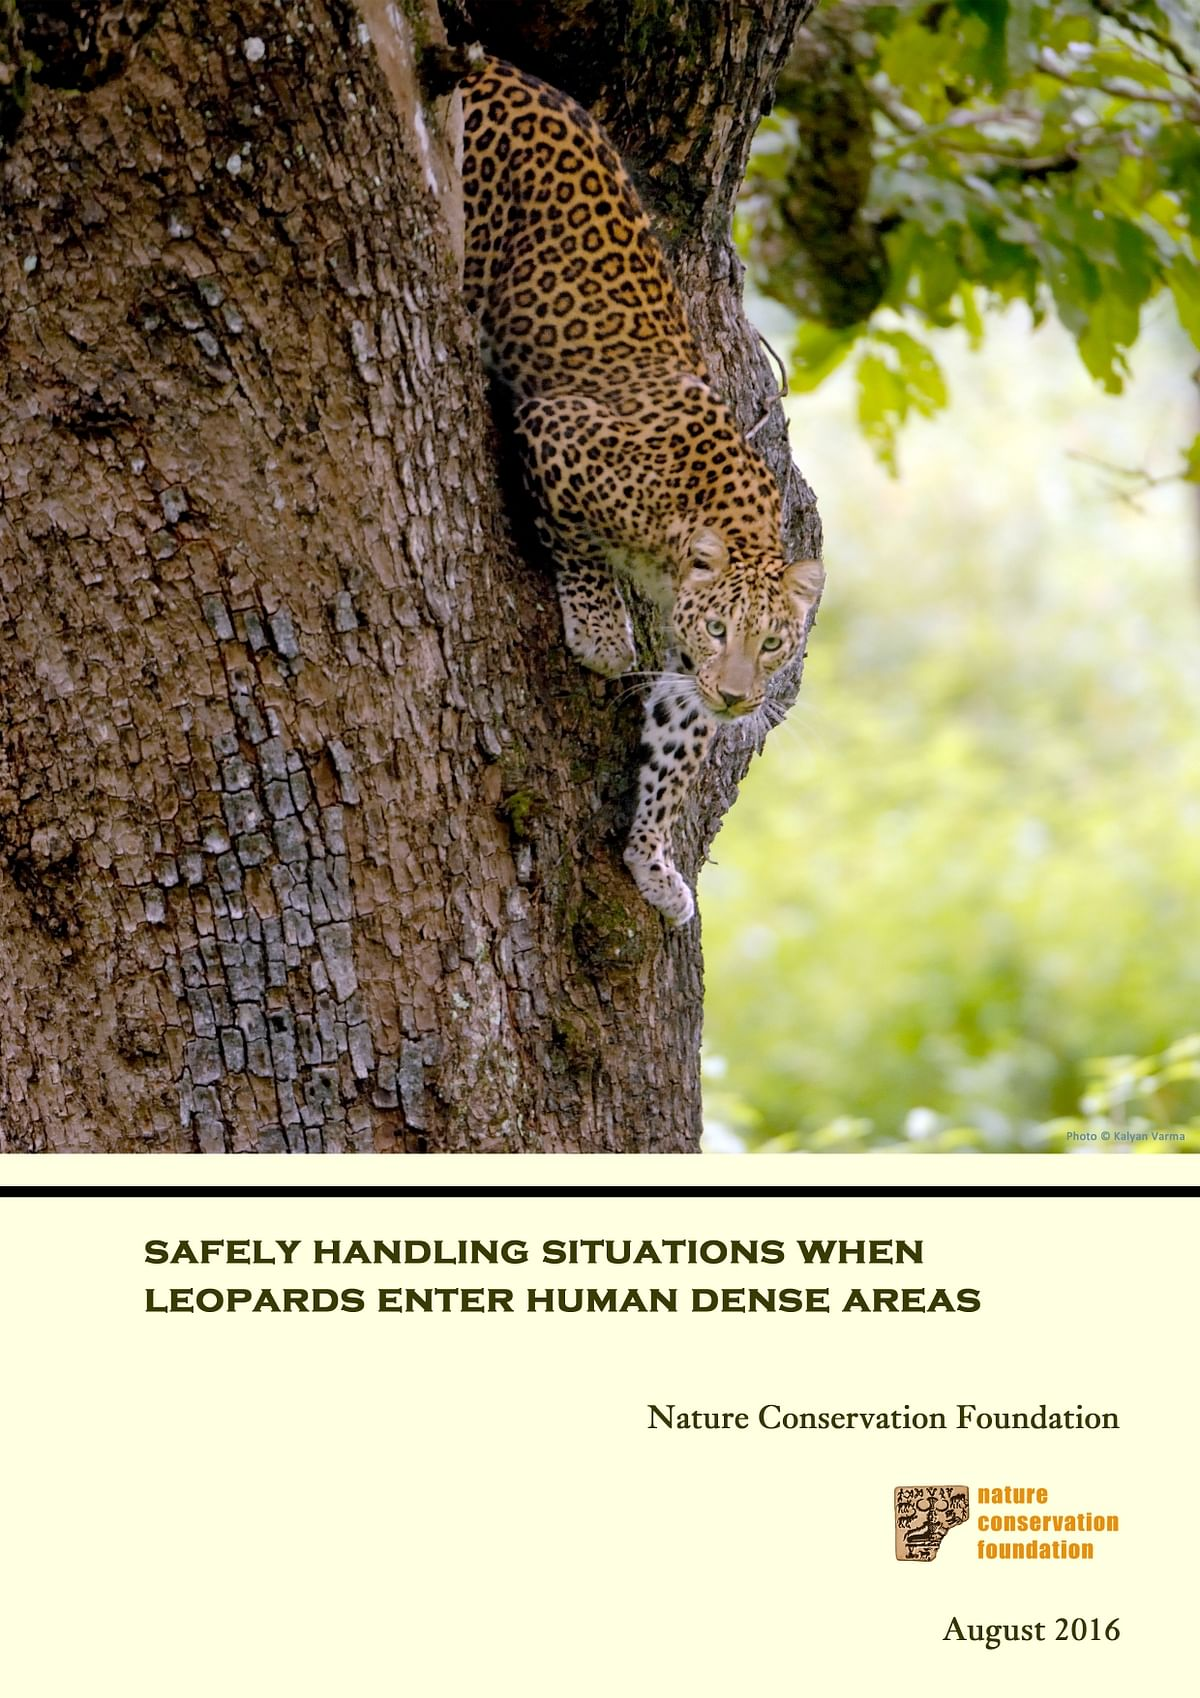 Safely handling situations when leopards enter human dense areas - English version